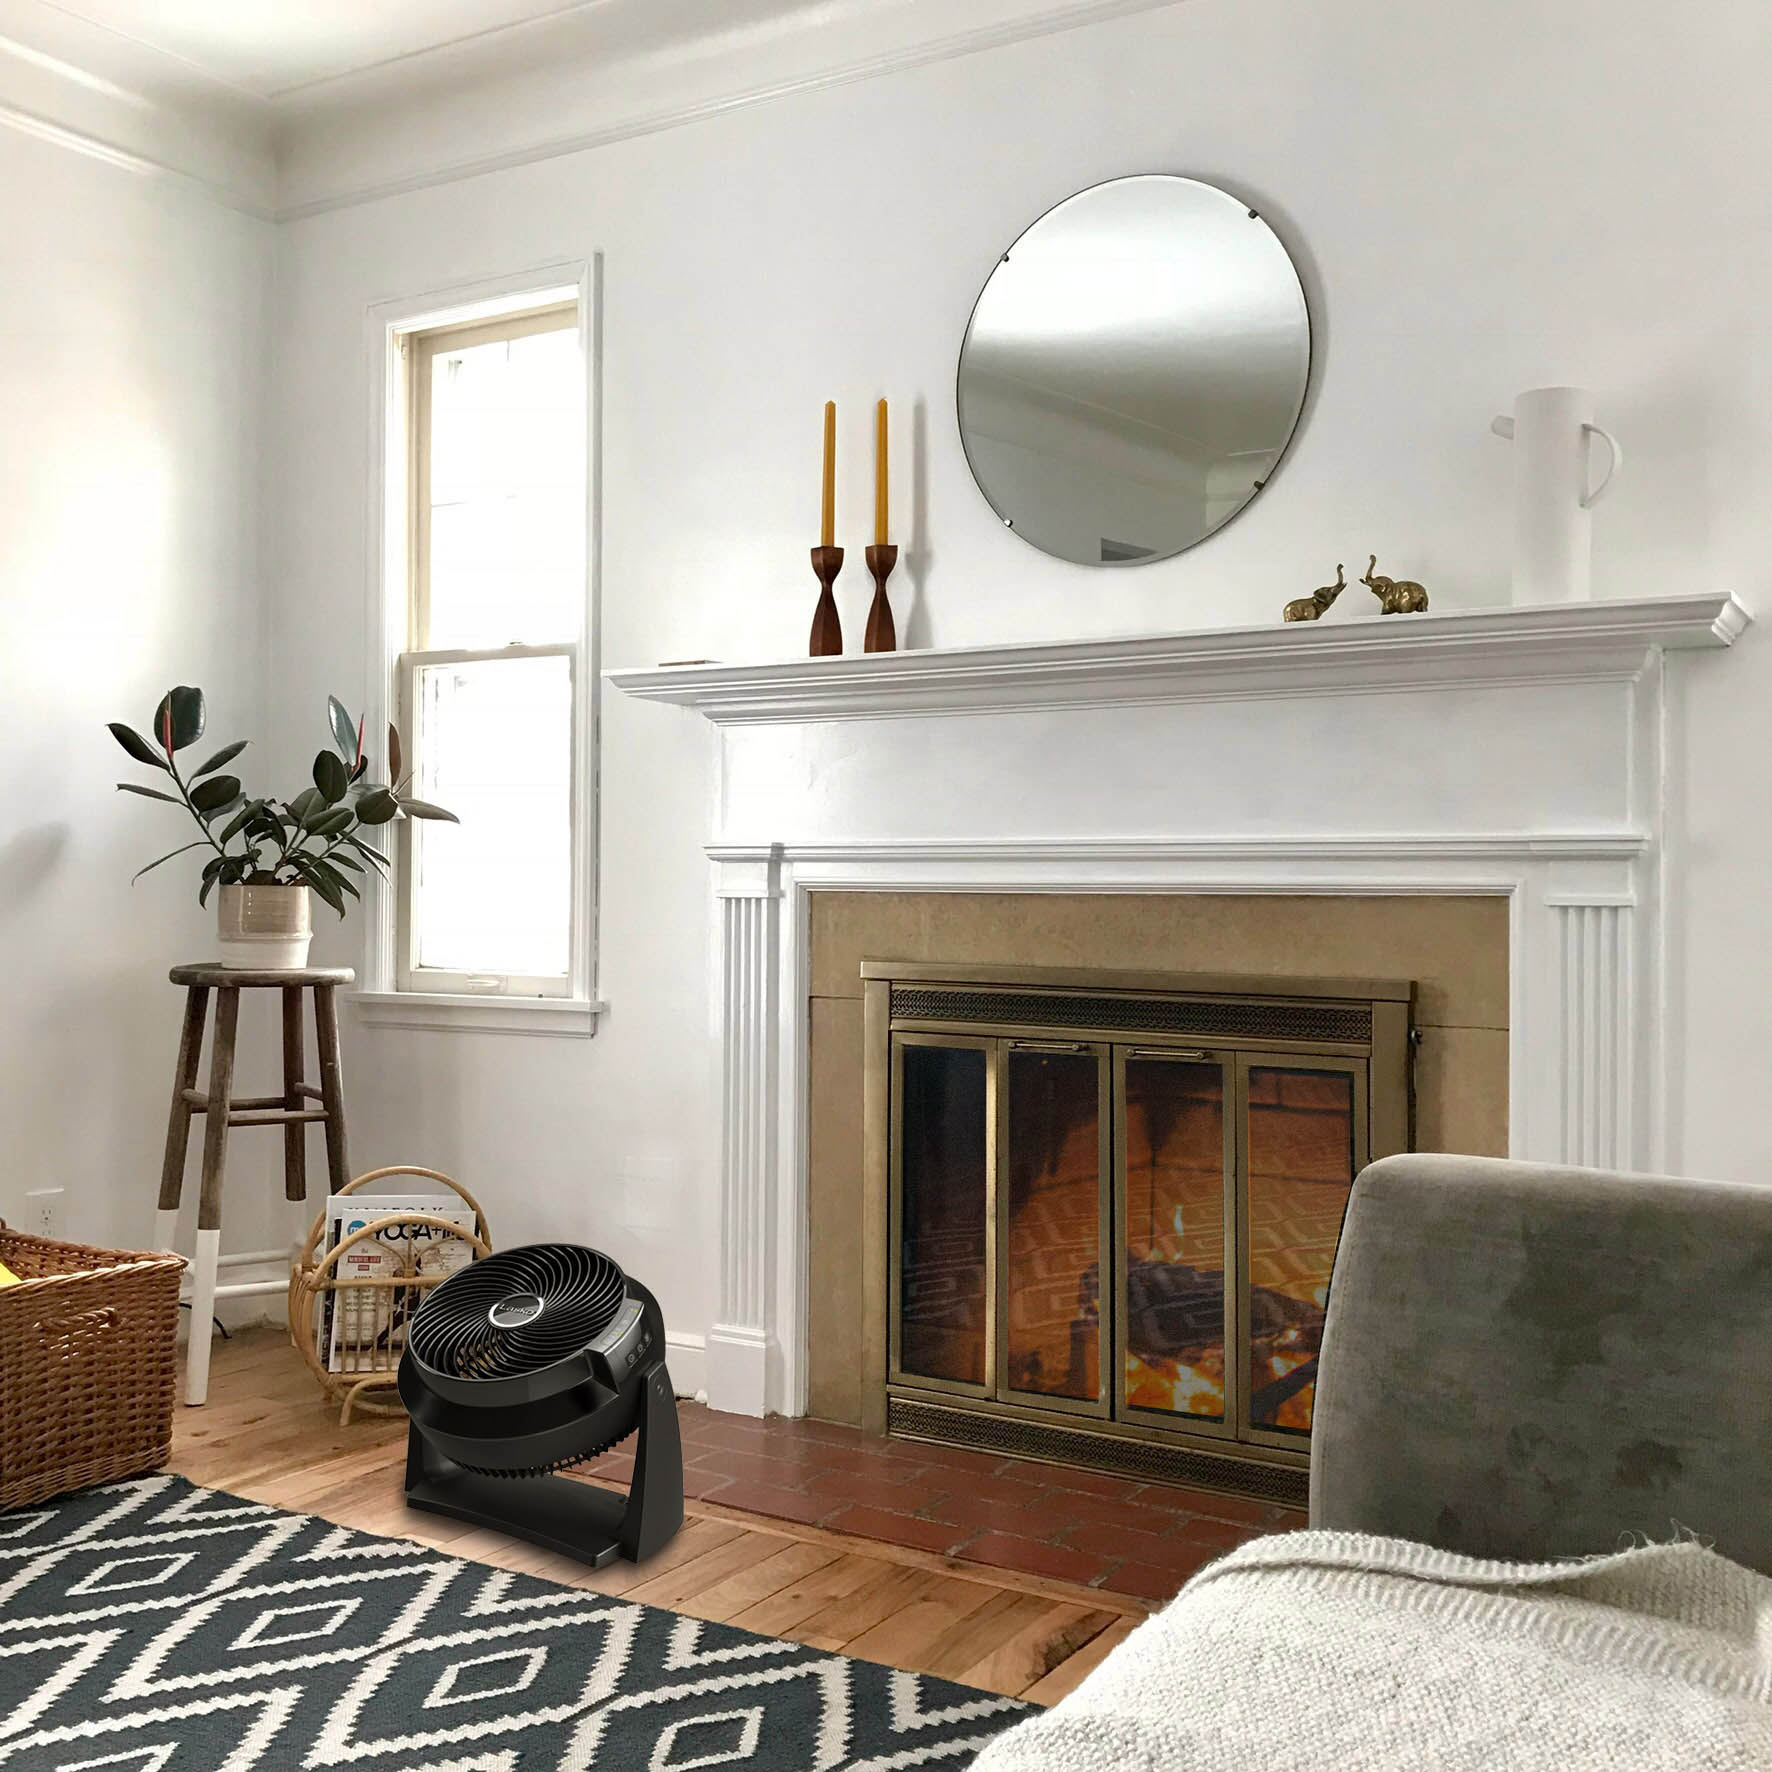 How Fans Can Help Spread Fireplace Heat Lasko Products